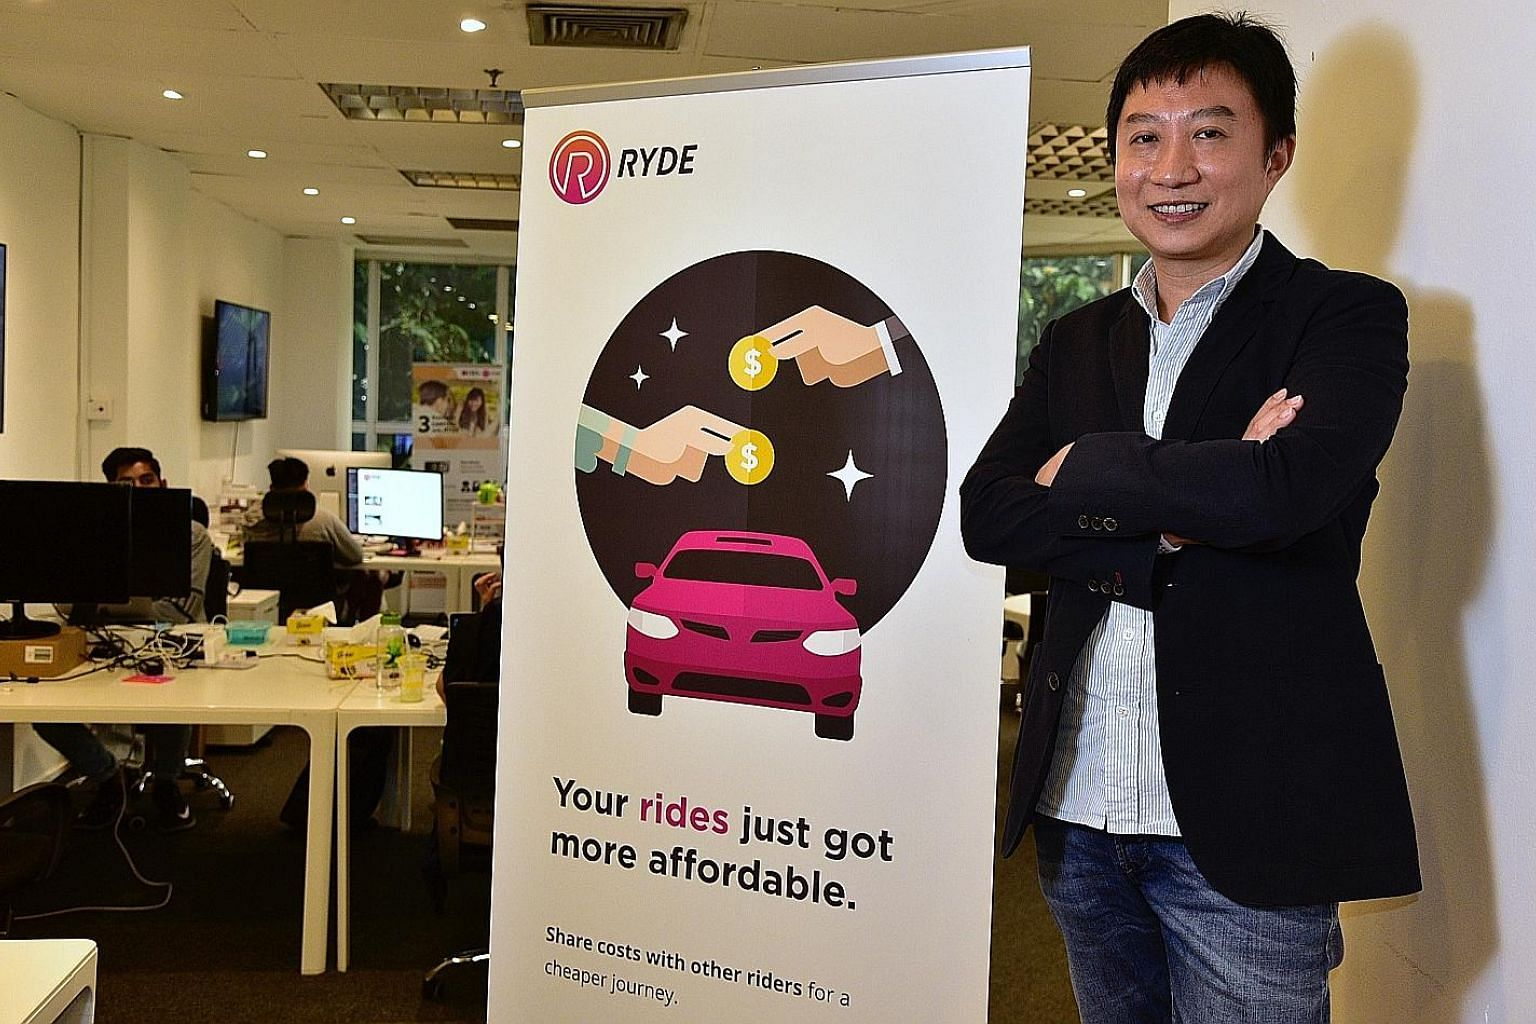 Ryde's CEO Terence Zou says drivers are already signing up with the service.